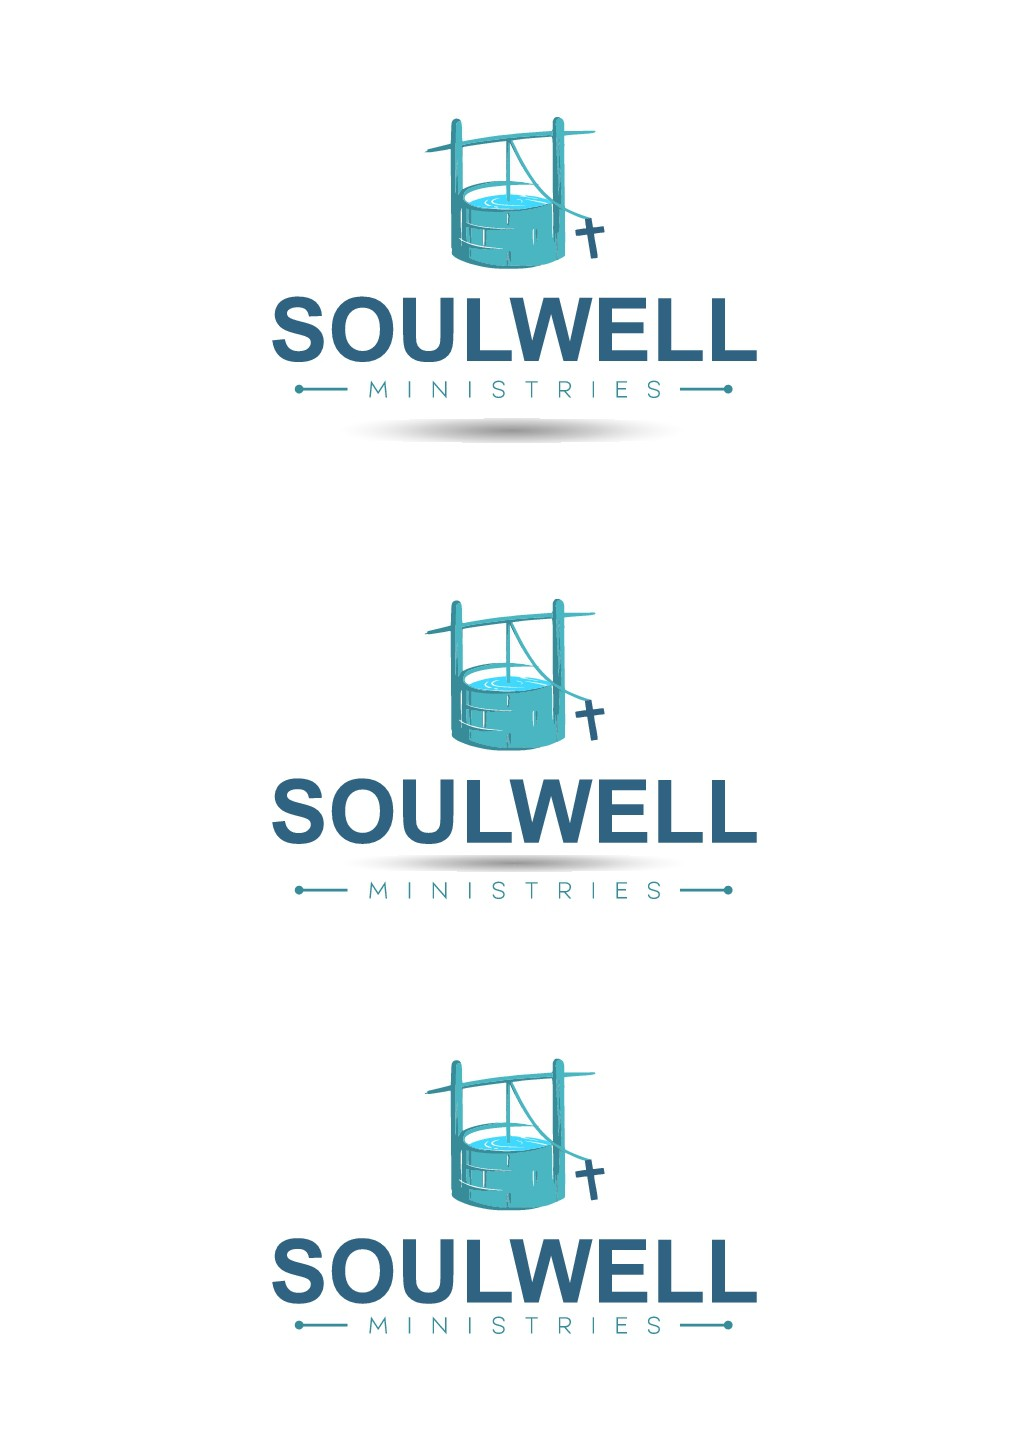 SOULWELL Ministries LOGO search...please help us launch our ministry!